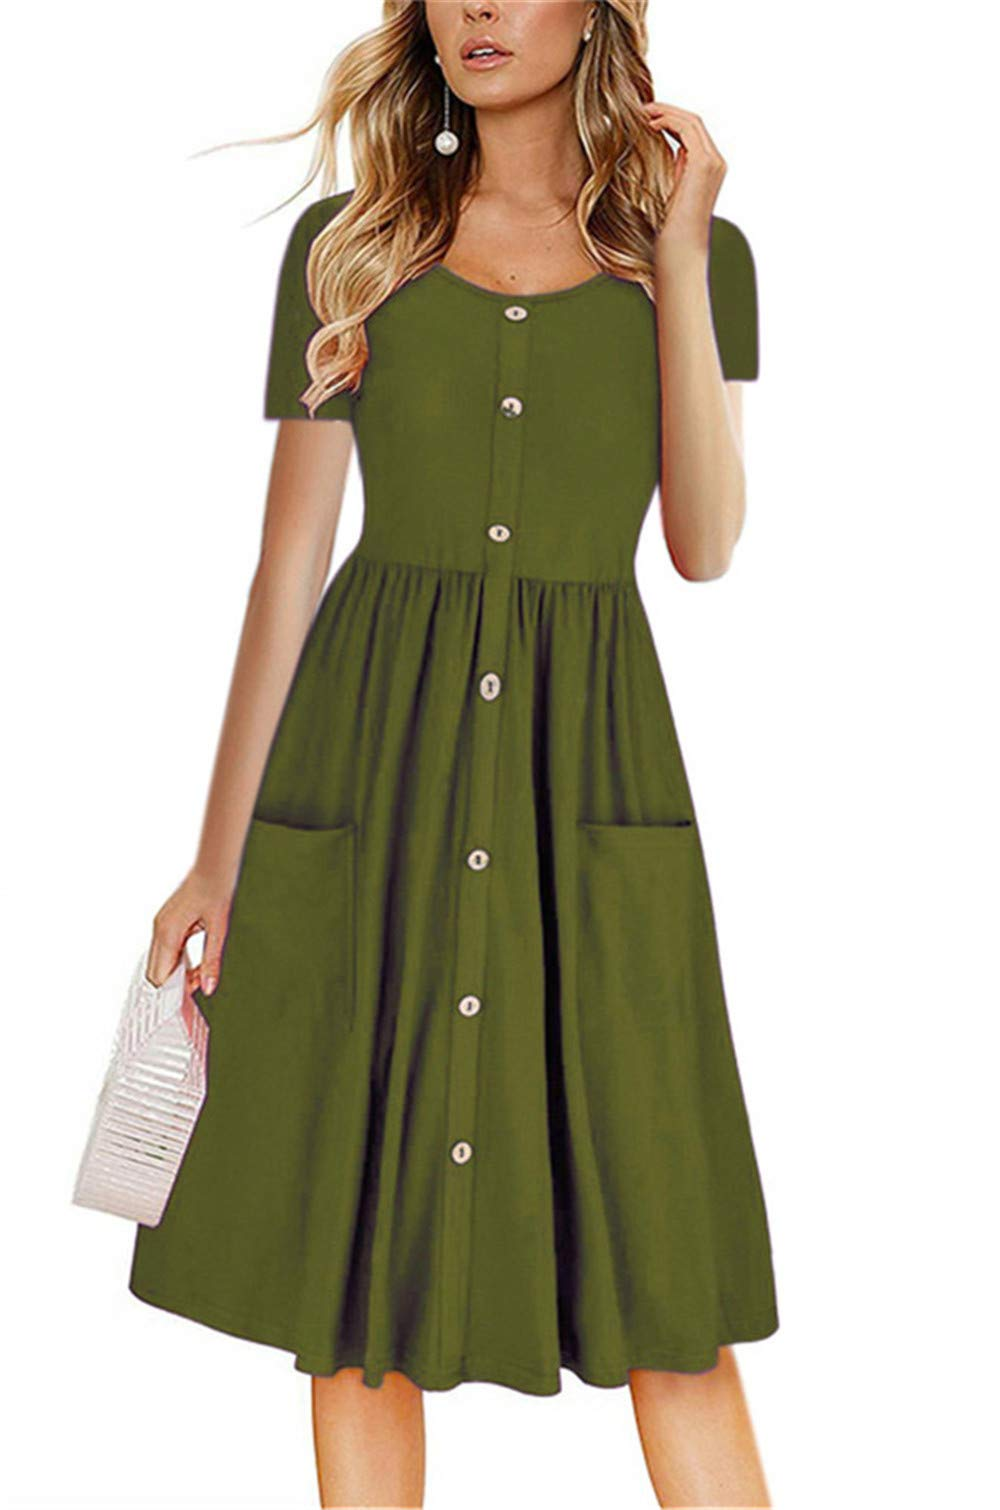 LAMISSCHE Womens Summer Casual Short Sleeve V Neck Button Down A-line Dress with Pockets(Army Green,L) by LAMISSCHE